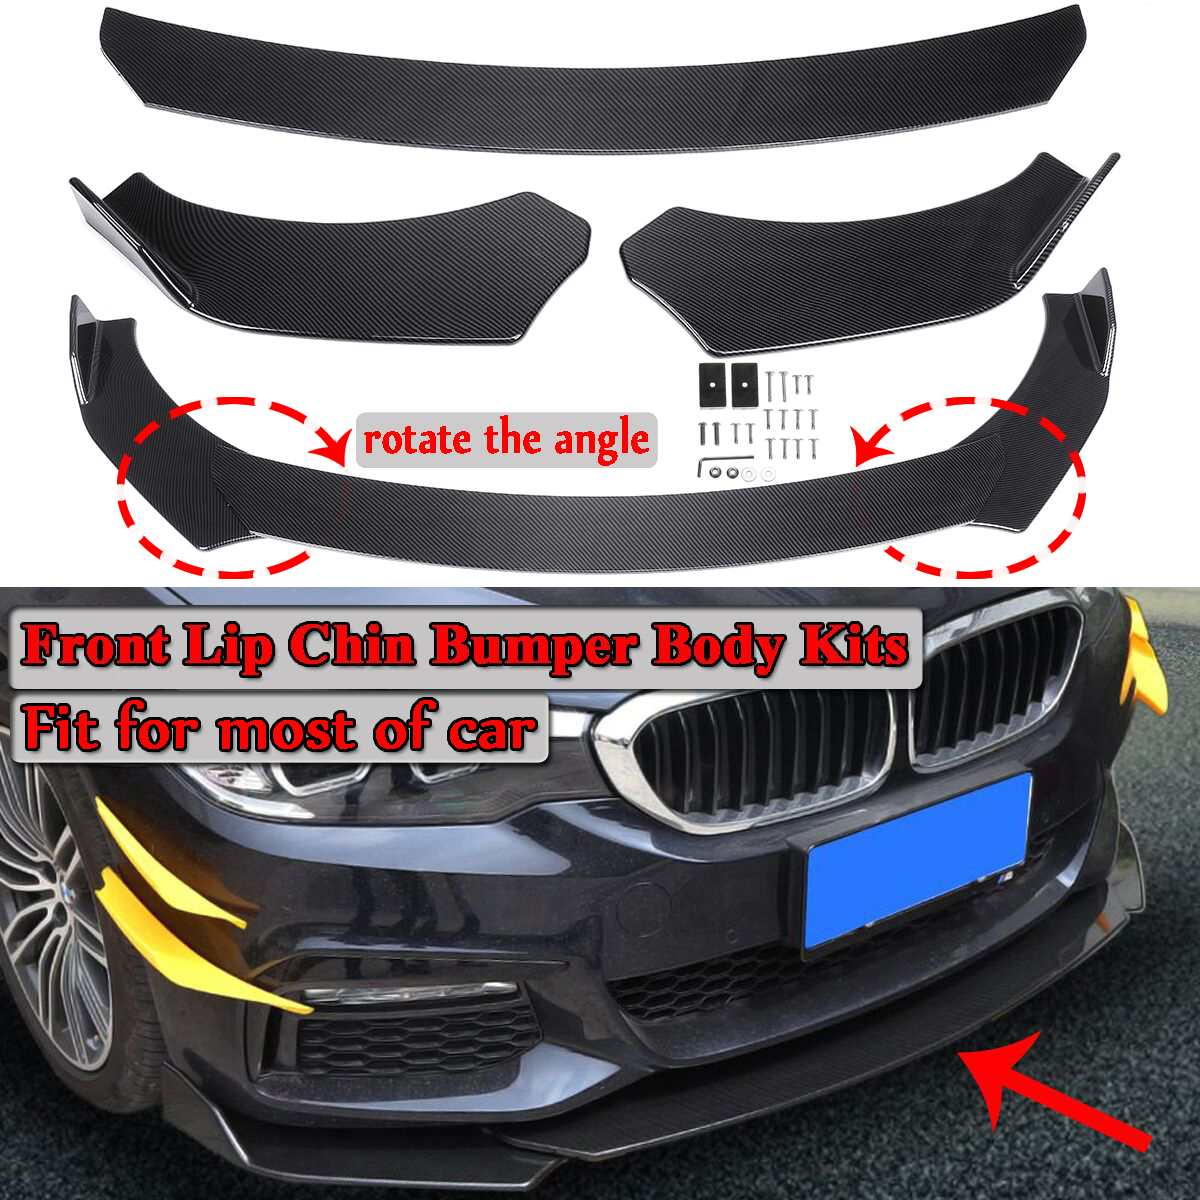 Carbon Fiber Look/ Black Universal 3Pieces Car Front Lip Chin Bumper Body Kits Rotate The Angle New For Honda For Civic For Benz(China)